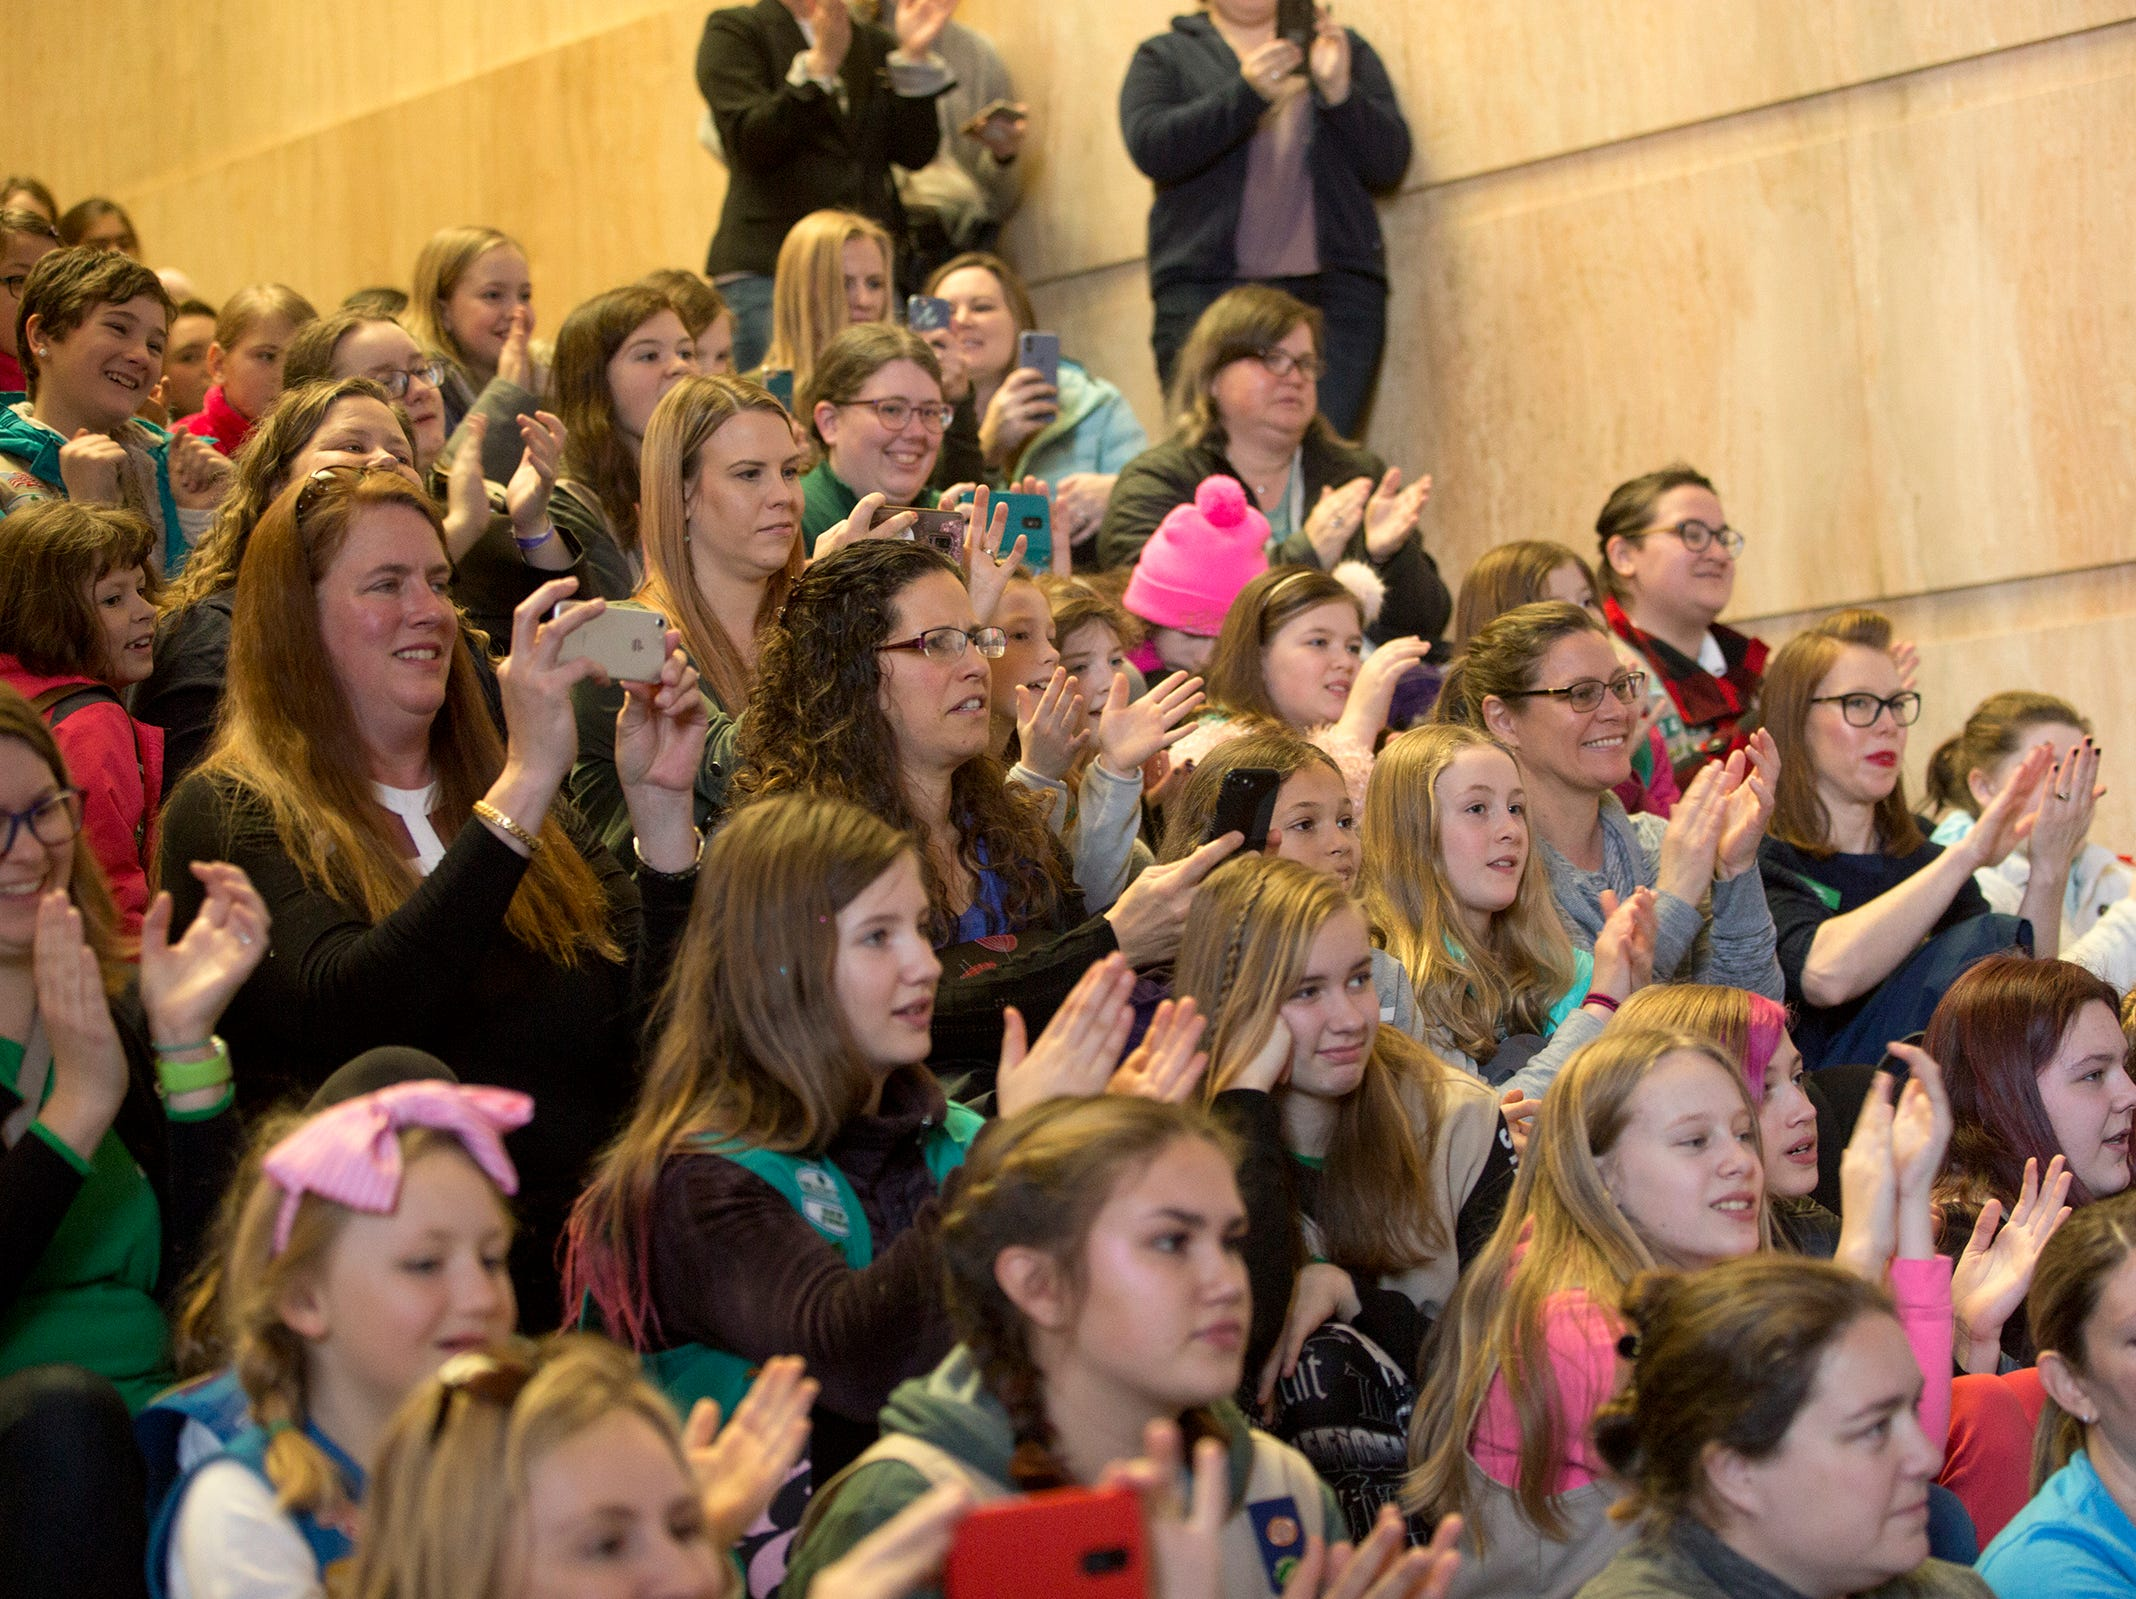 Around 200 Girl Scouts from across the state and 100 adult volunteers react to Gov. Kate Brown during Girl Scout Leadership Day at the Oregon State Capitol in Salem March 12, 2019.